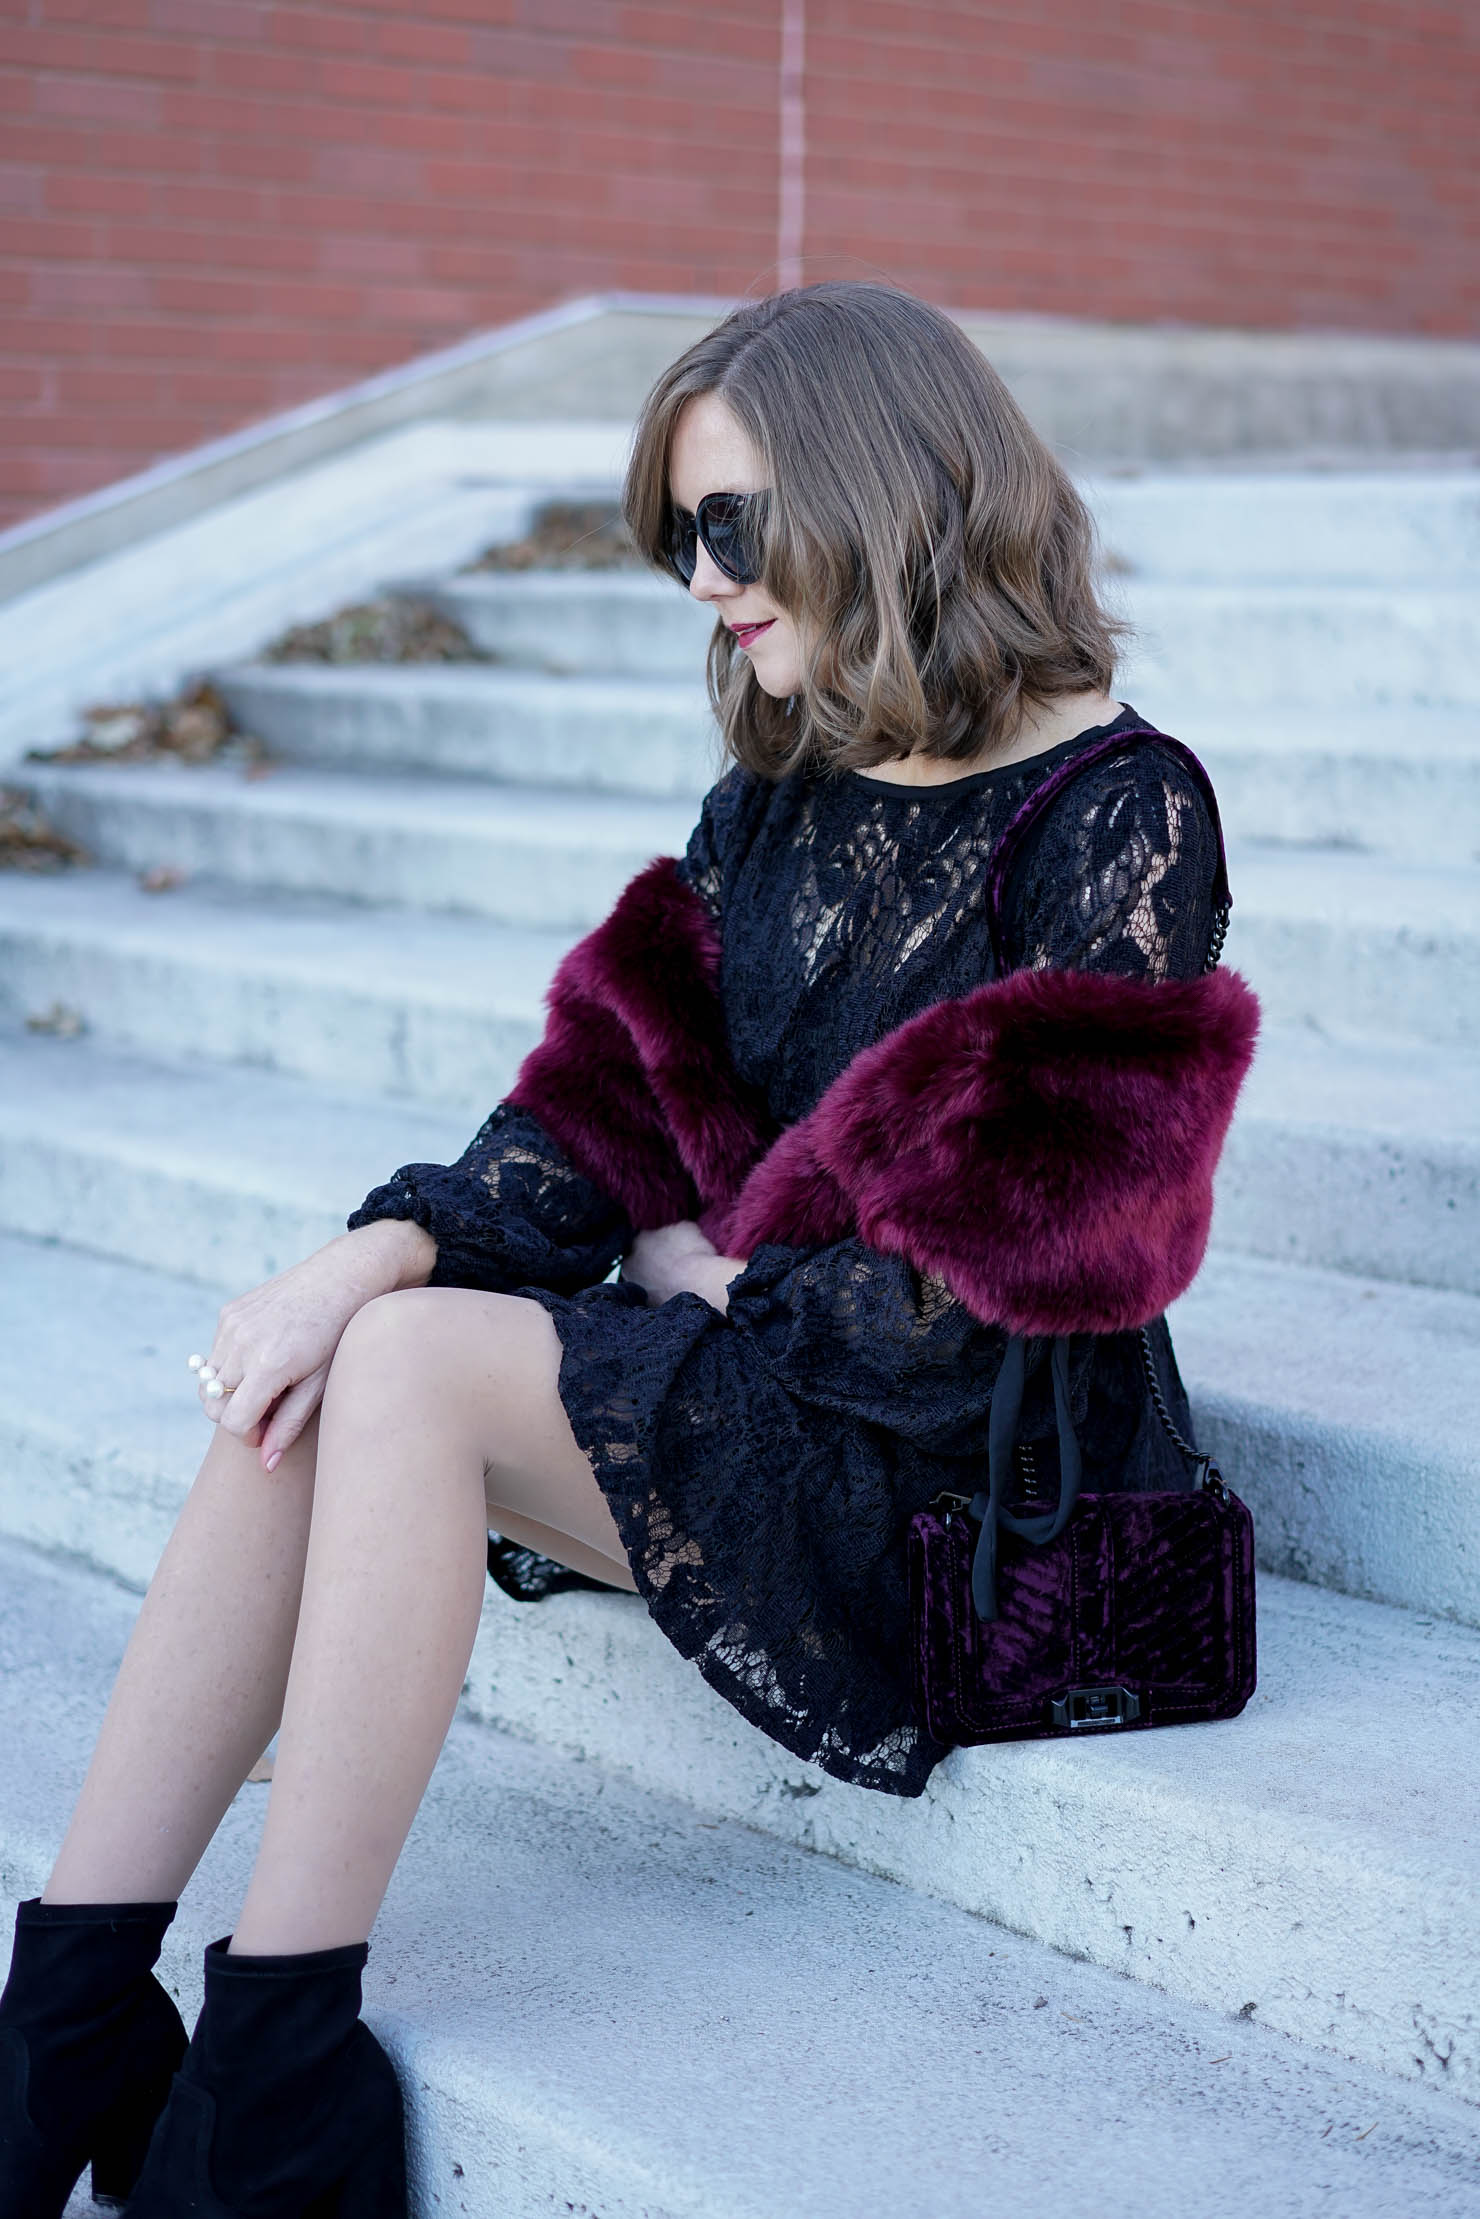 dressy holiday outfit, Free People black lace mini dress with long sleeves, holiday outfit, dressy holiday look, burgundy faux fur wrap, velvet crossbody, mixing lace velvet and fur textures